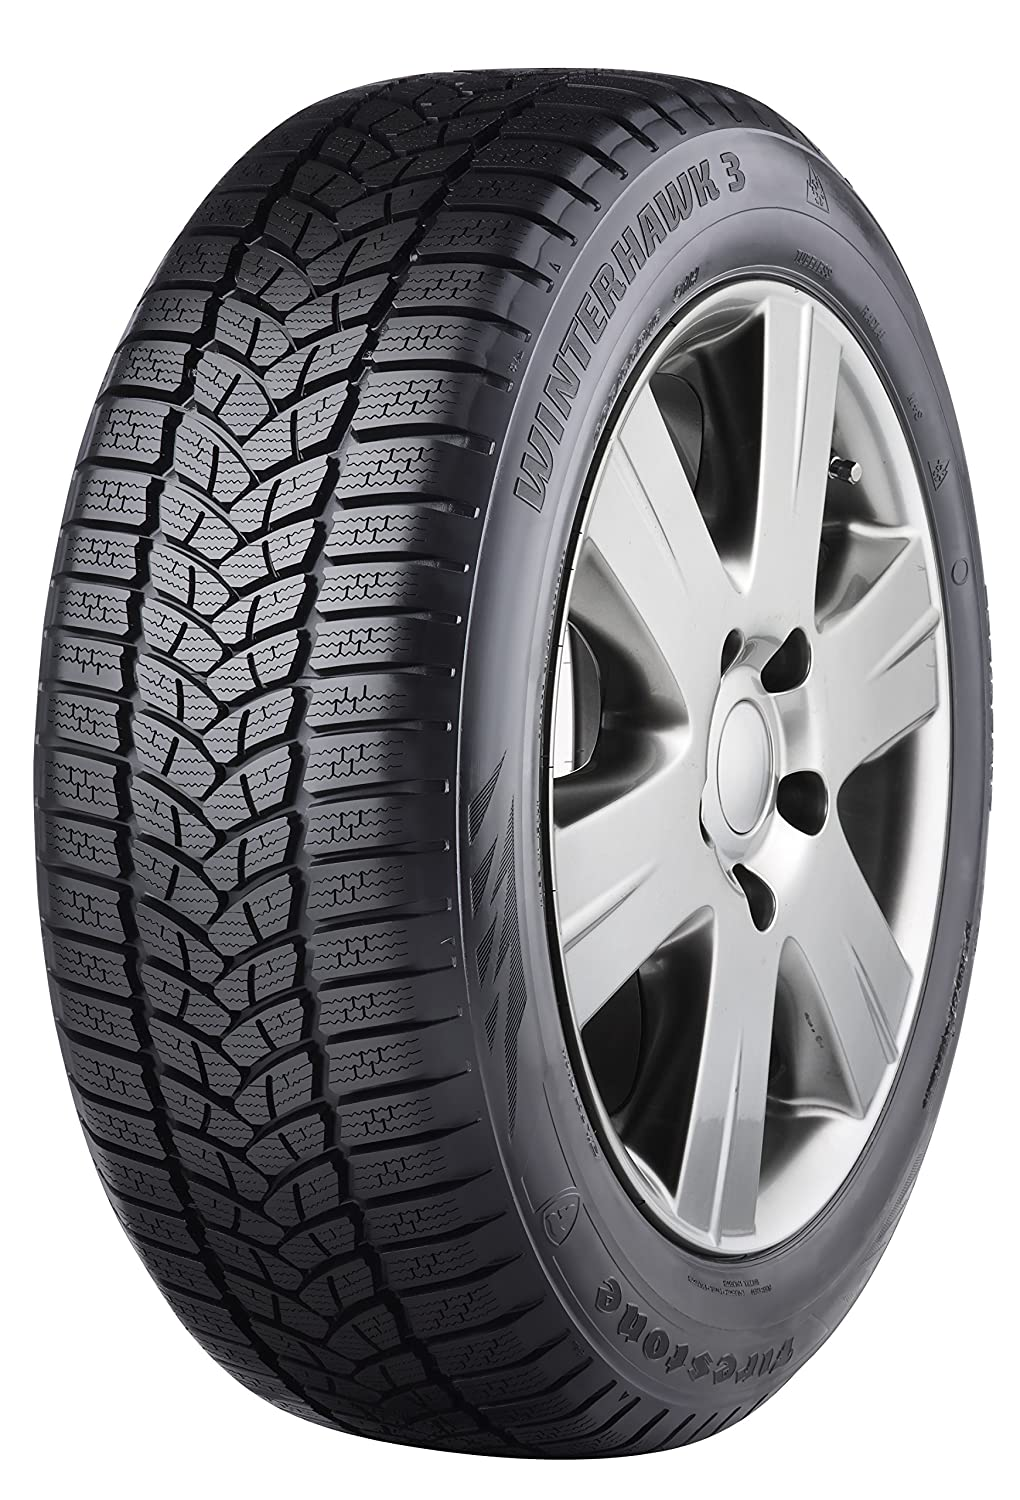 Firestone Winterhawk 3 - 165/70/R14 81T - E/C/71 - Winter Tire Bridgestone Tires